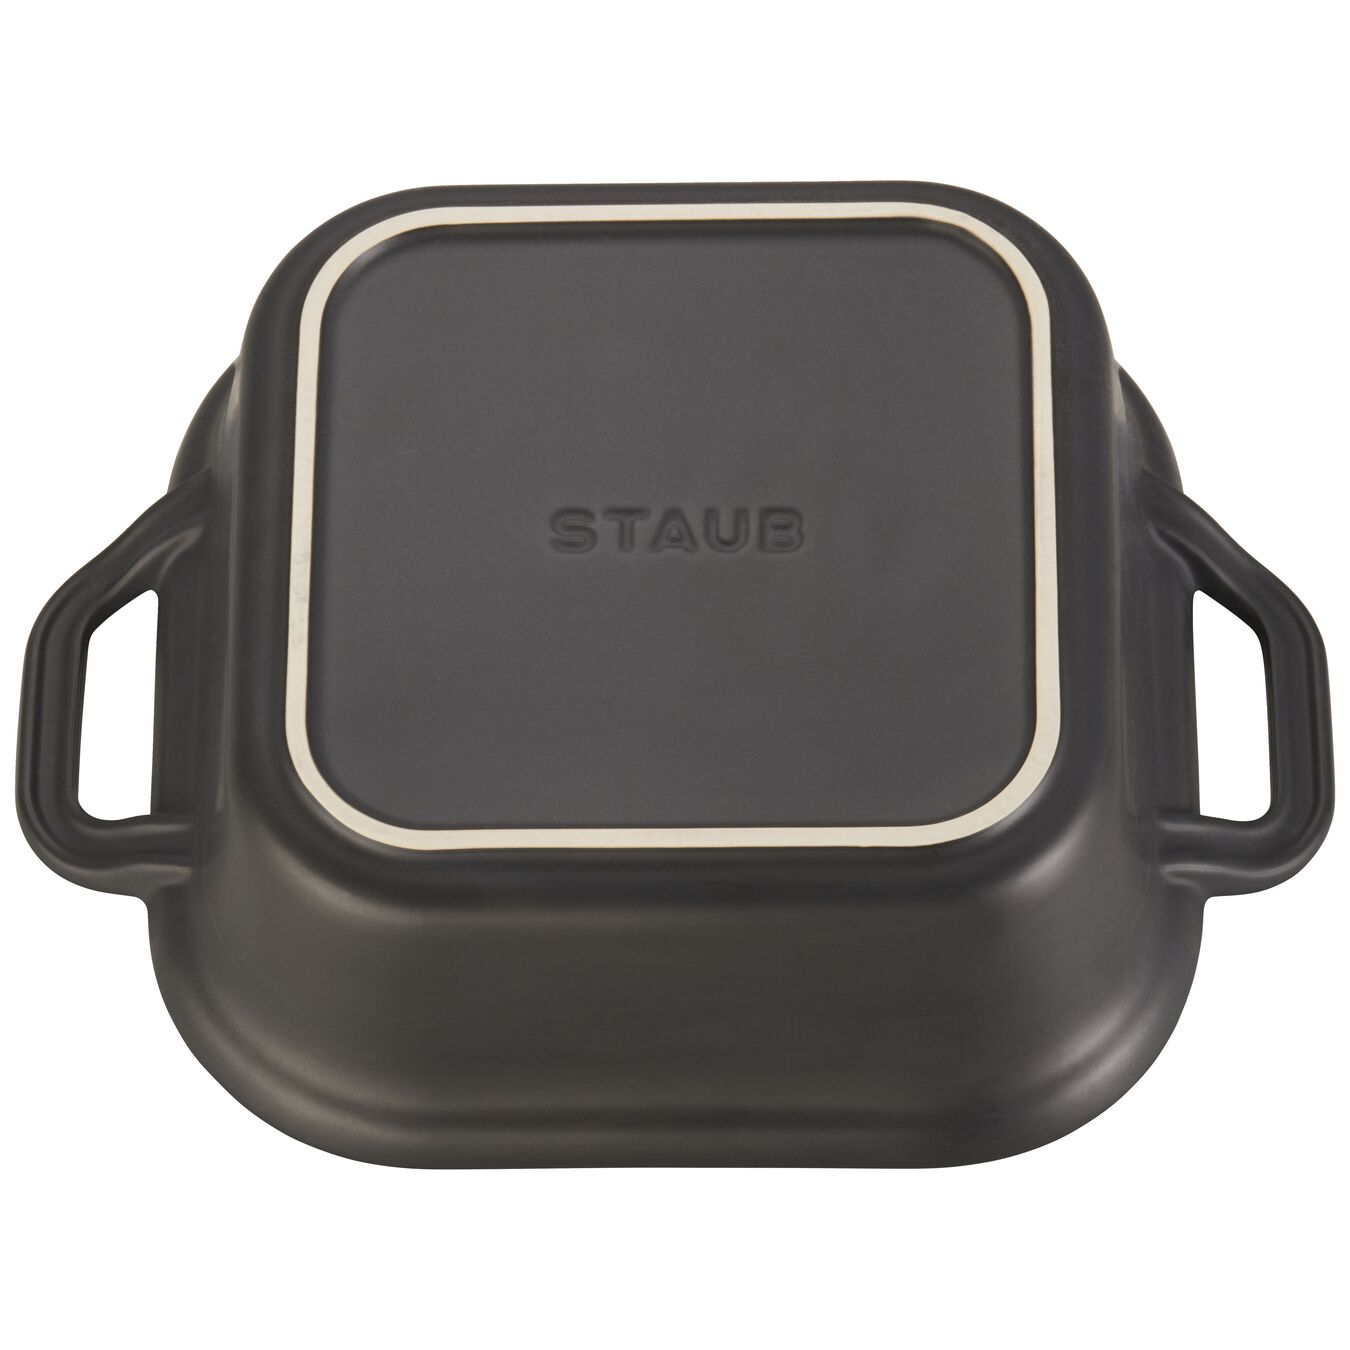 9-inch X 9-inch Square Covered Baking Dish - Matte Black,,large 4